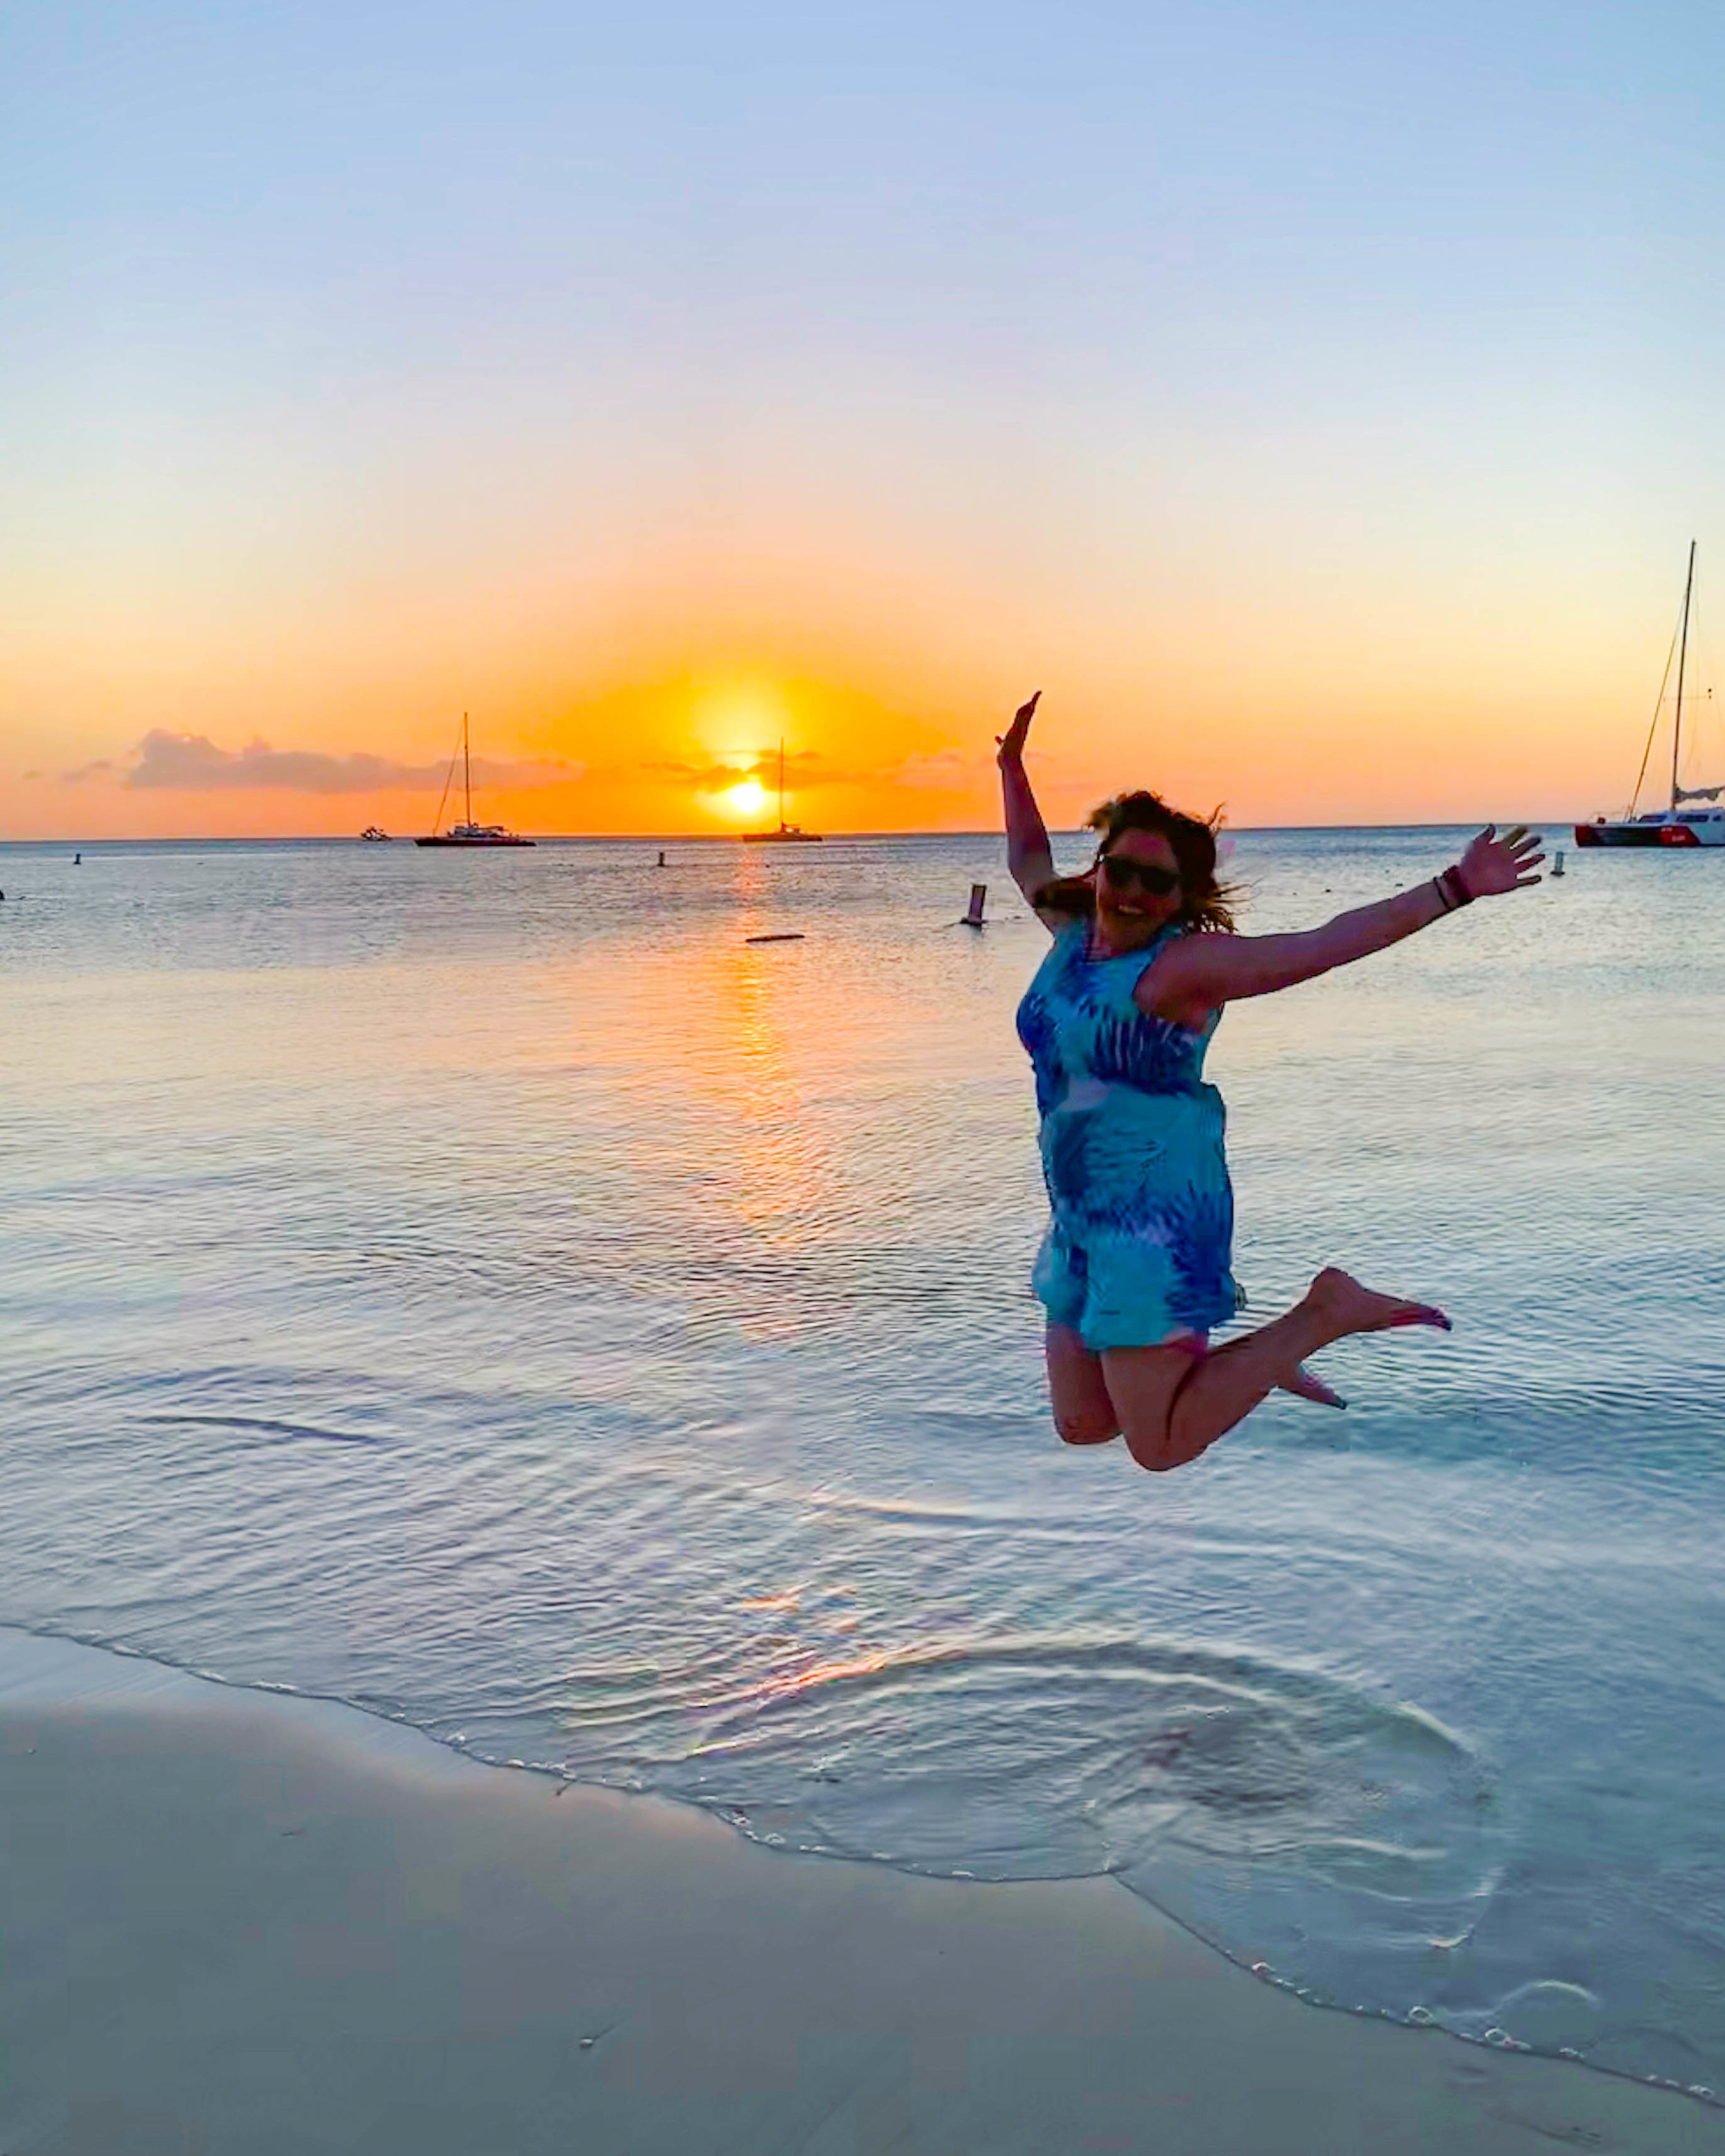 Jumping at Aruba Sunset beach time!